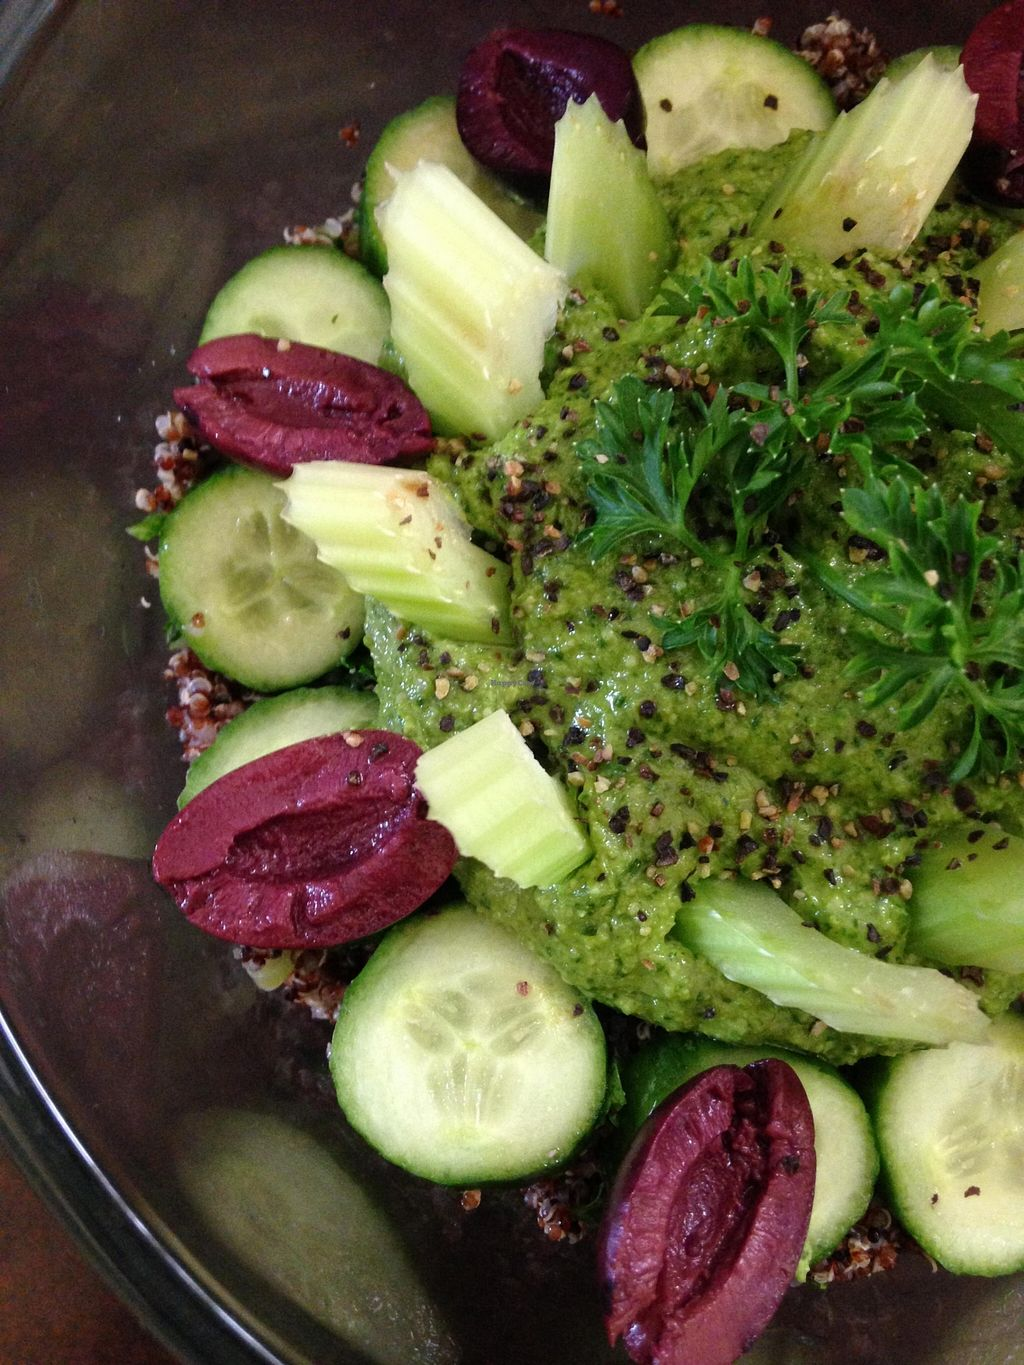 """Photo of The Enchanted Chef  by <a href=""""/members/profile/Ronald%20Lee%20Relyea"""">Ronald Lee Relyea</a> <br/>Basil Pesto Kalamata Olives Cucumbers <br/> August 31, 2015  - <a href='/contact/abuse/image/31388/116051'>Report</a>"""